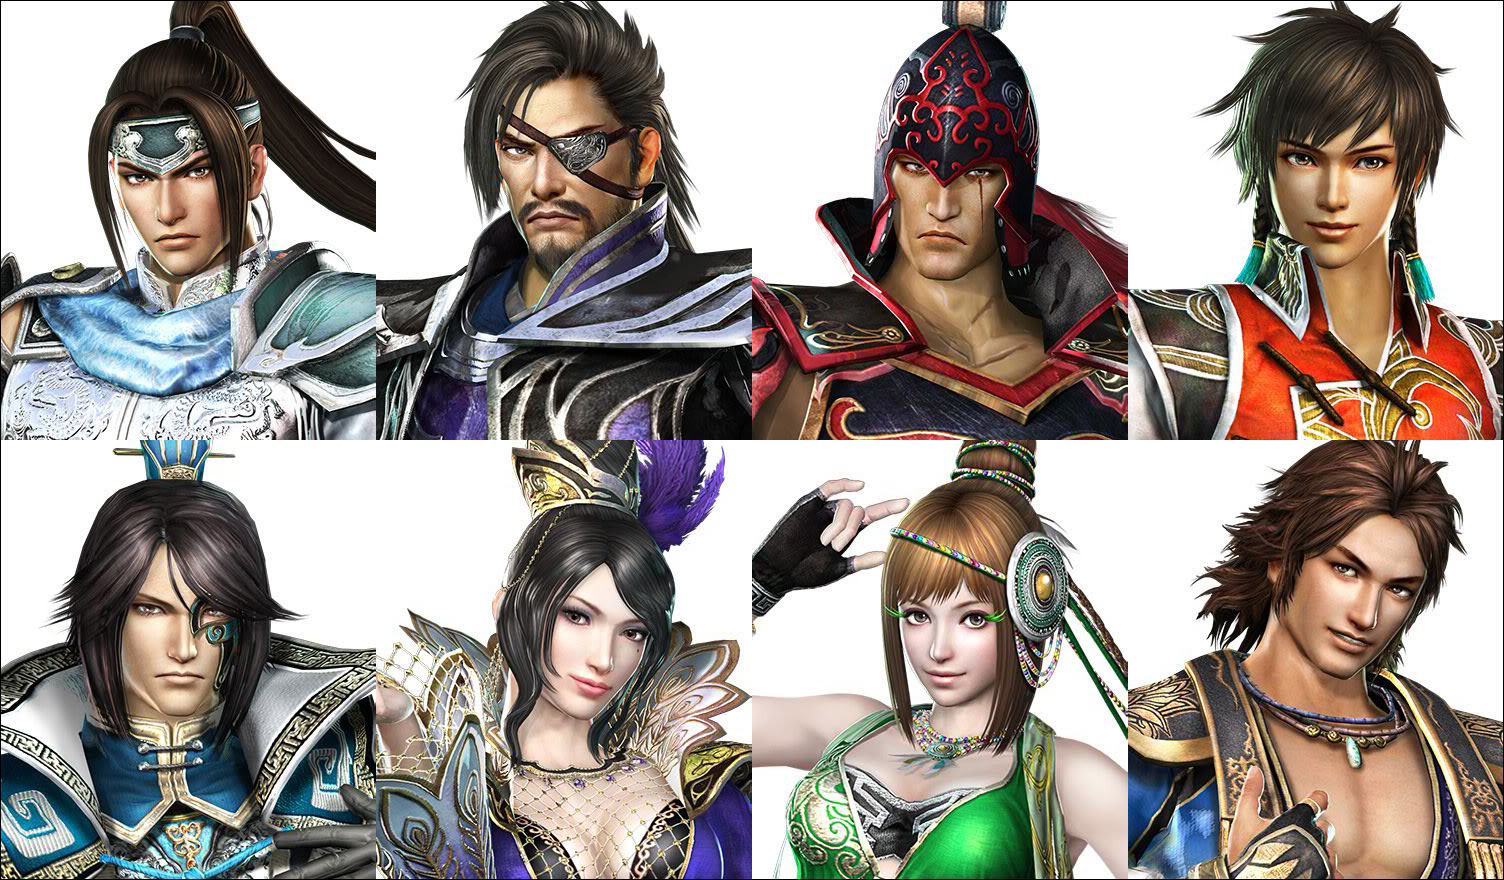 Your hopes for DW7? Dw7characters